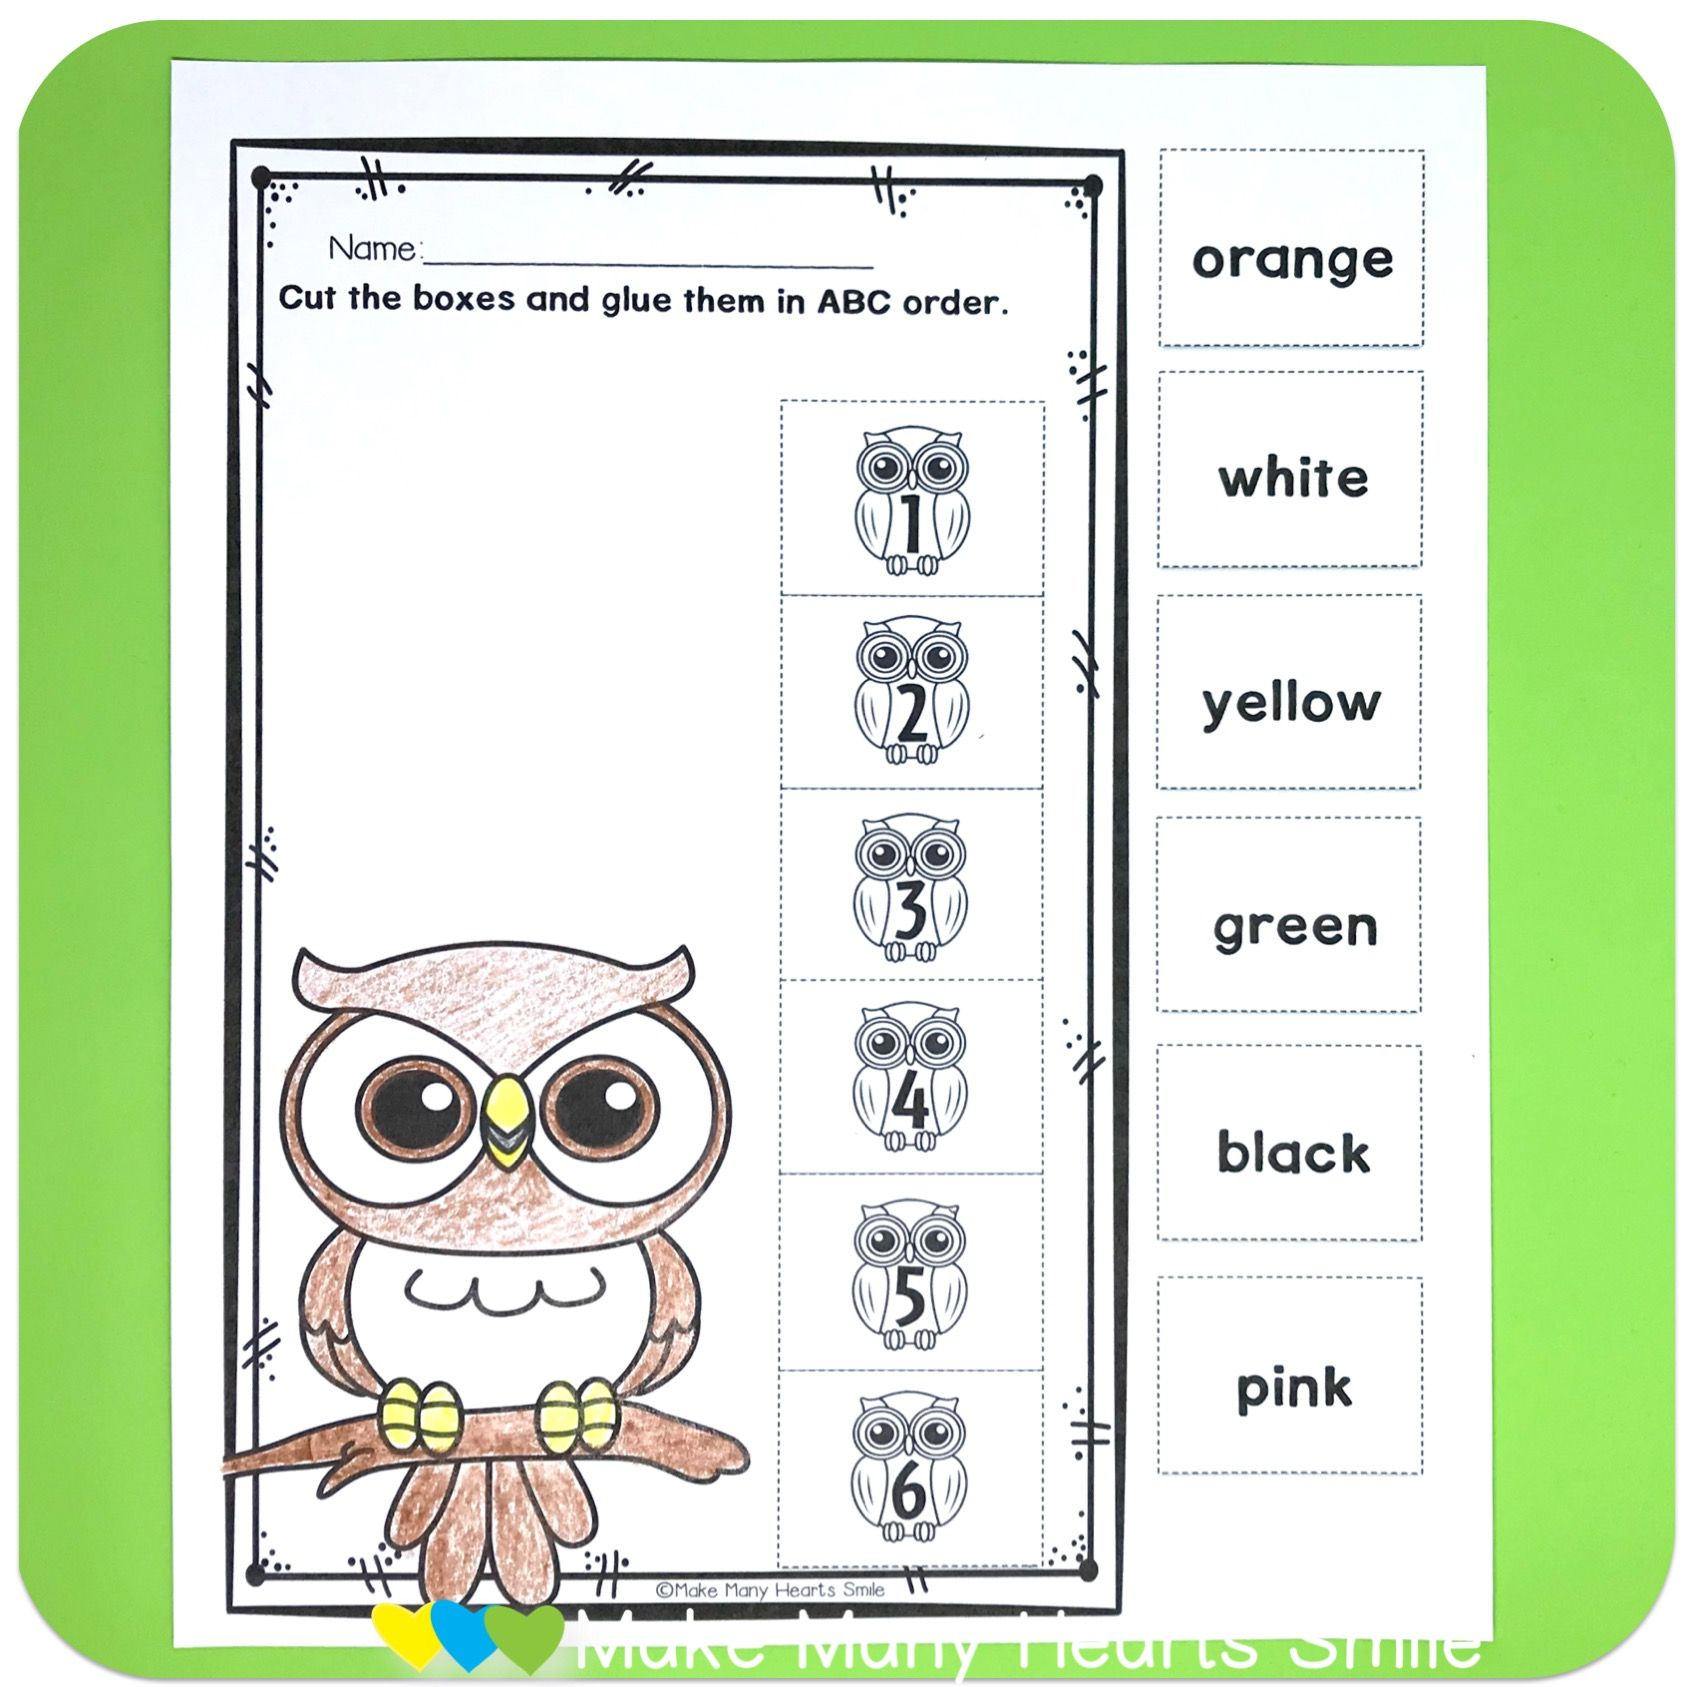 Editable Abc Order Worksheets Mhs12